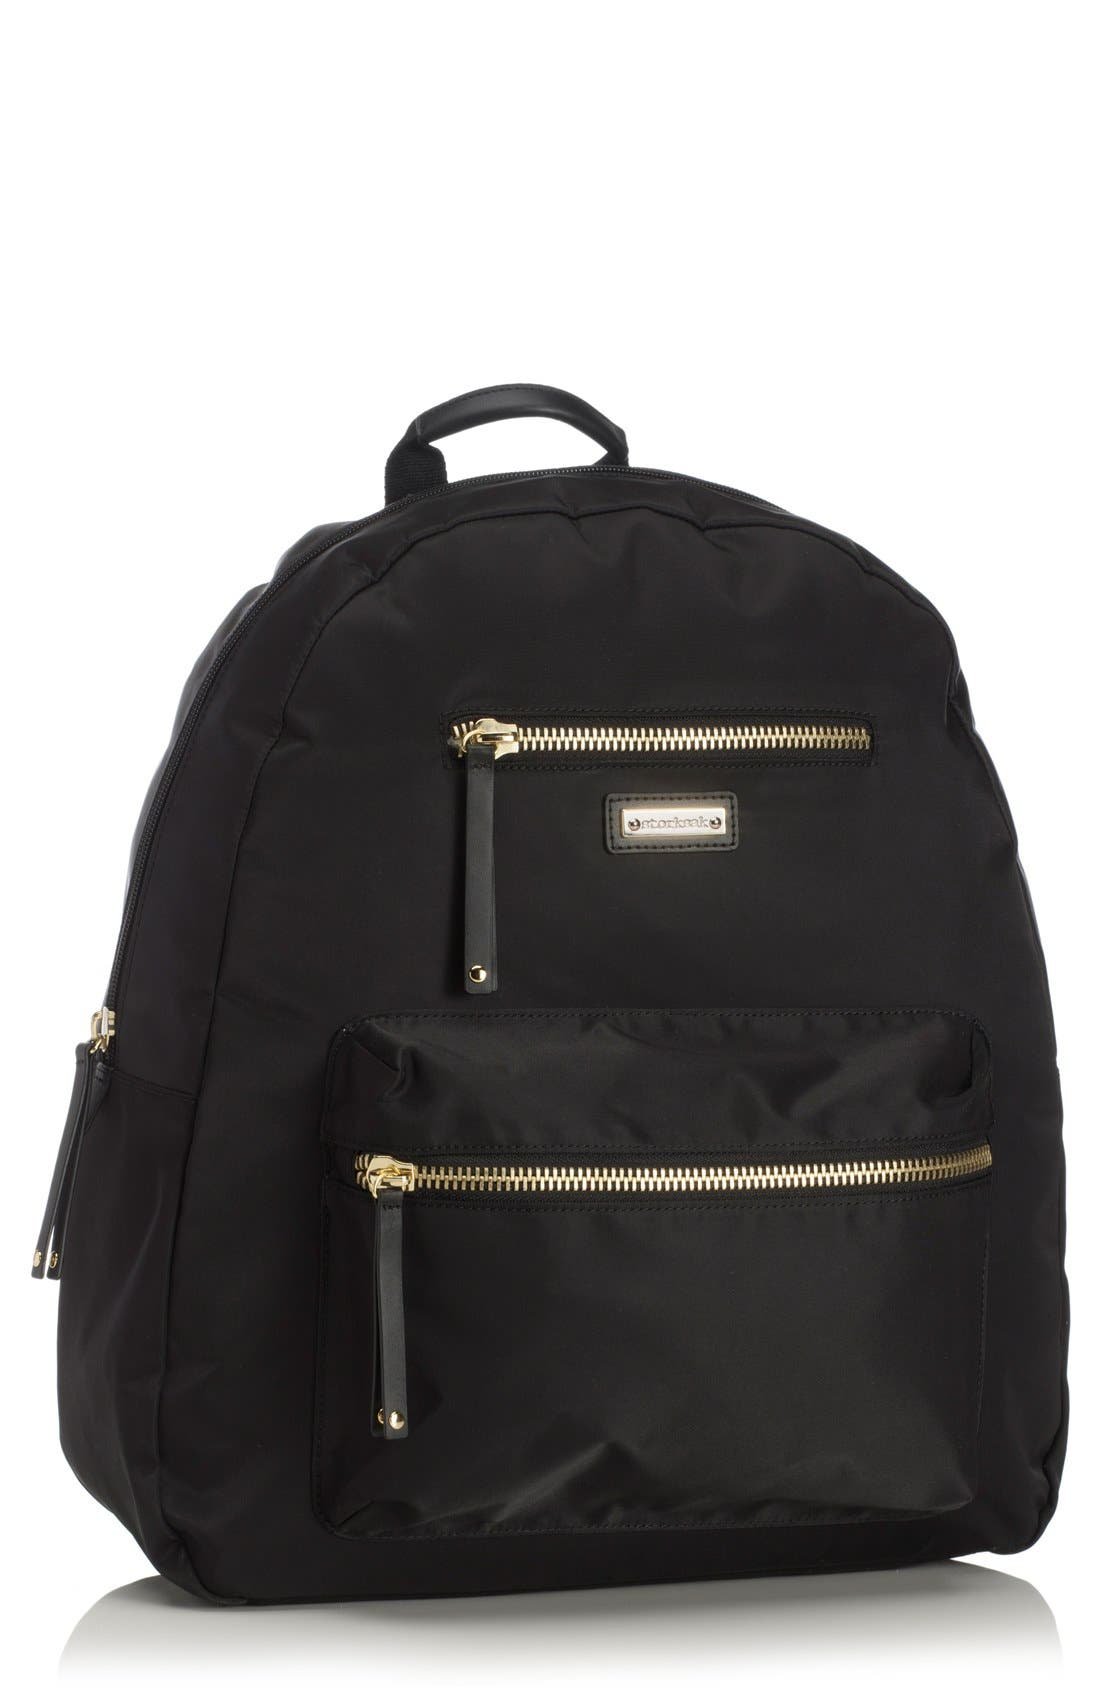 'Charlie' Backpack Diaper Bag,                         Main,                         color, Black